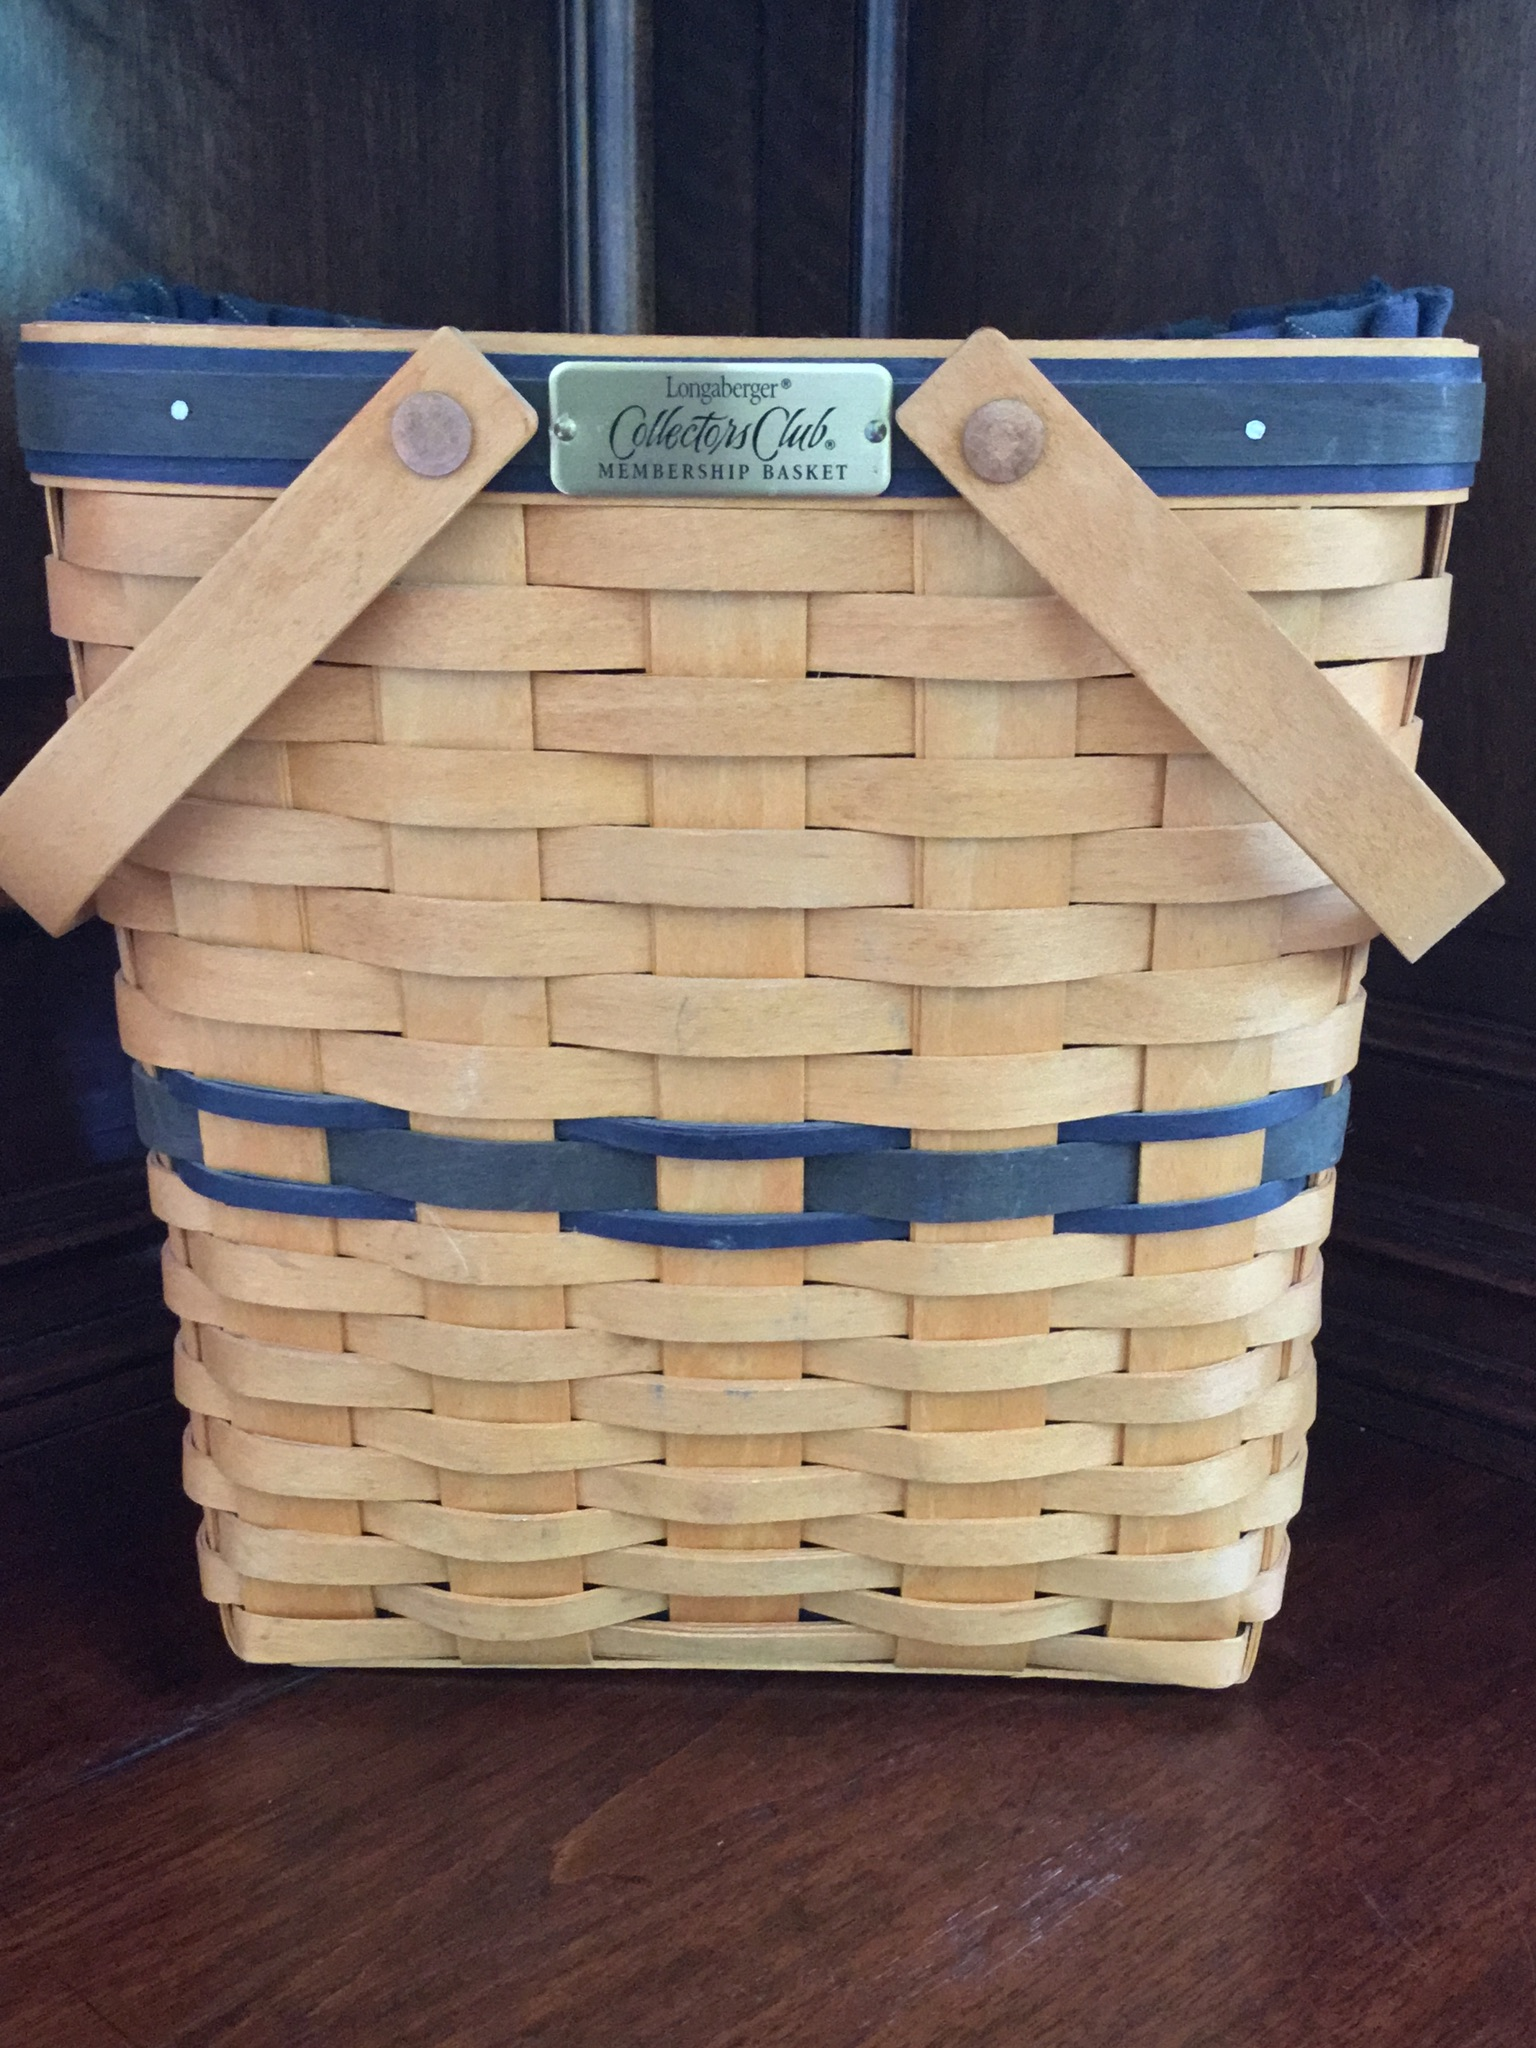 Longaberger basket building for sale the longaberger Longaberger baskets for sale